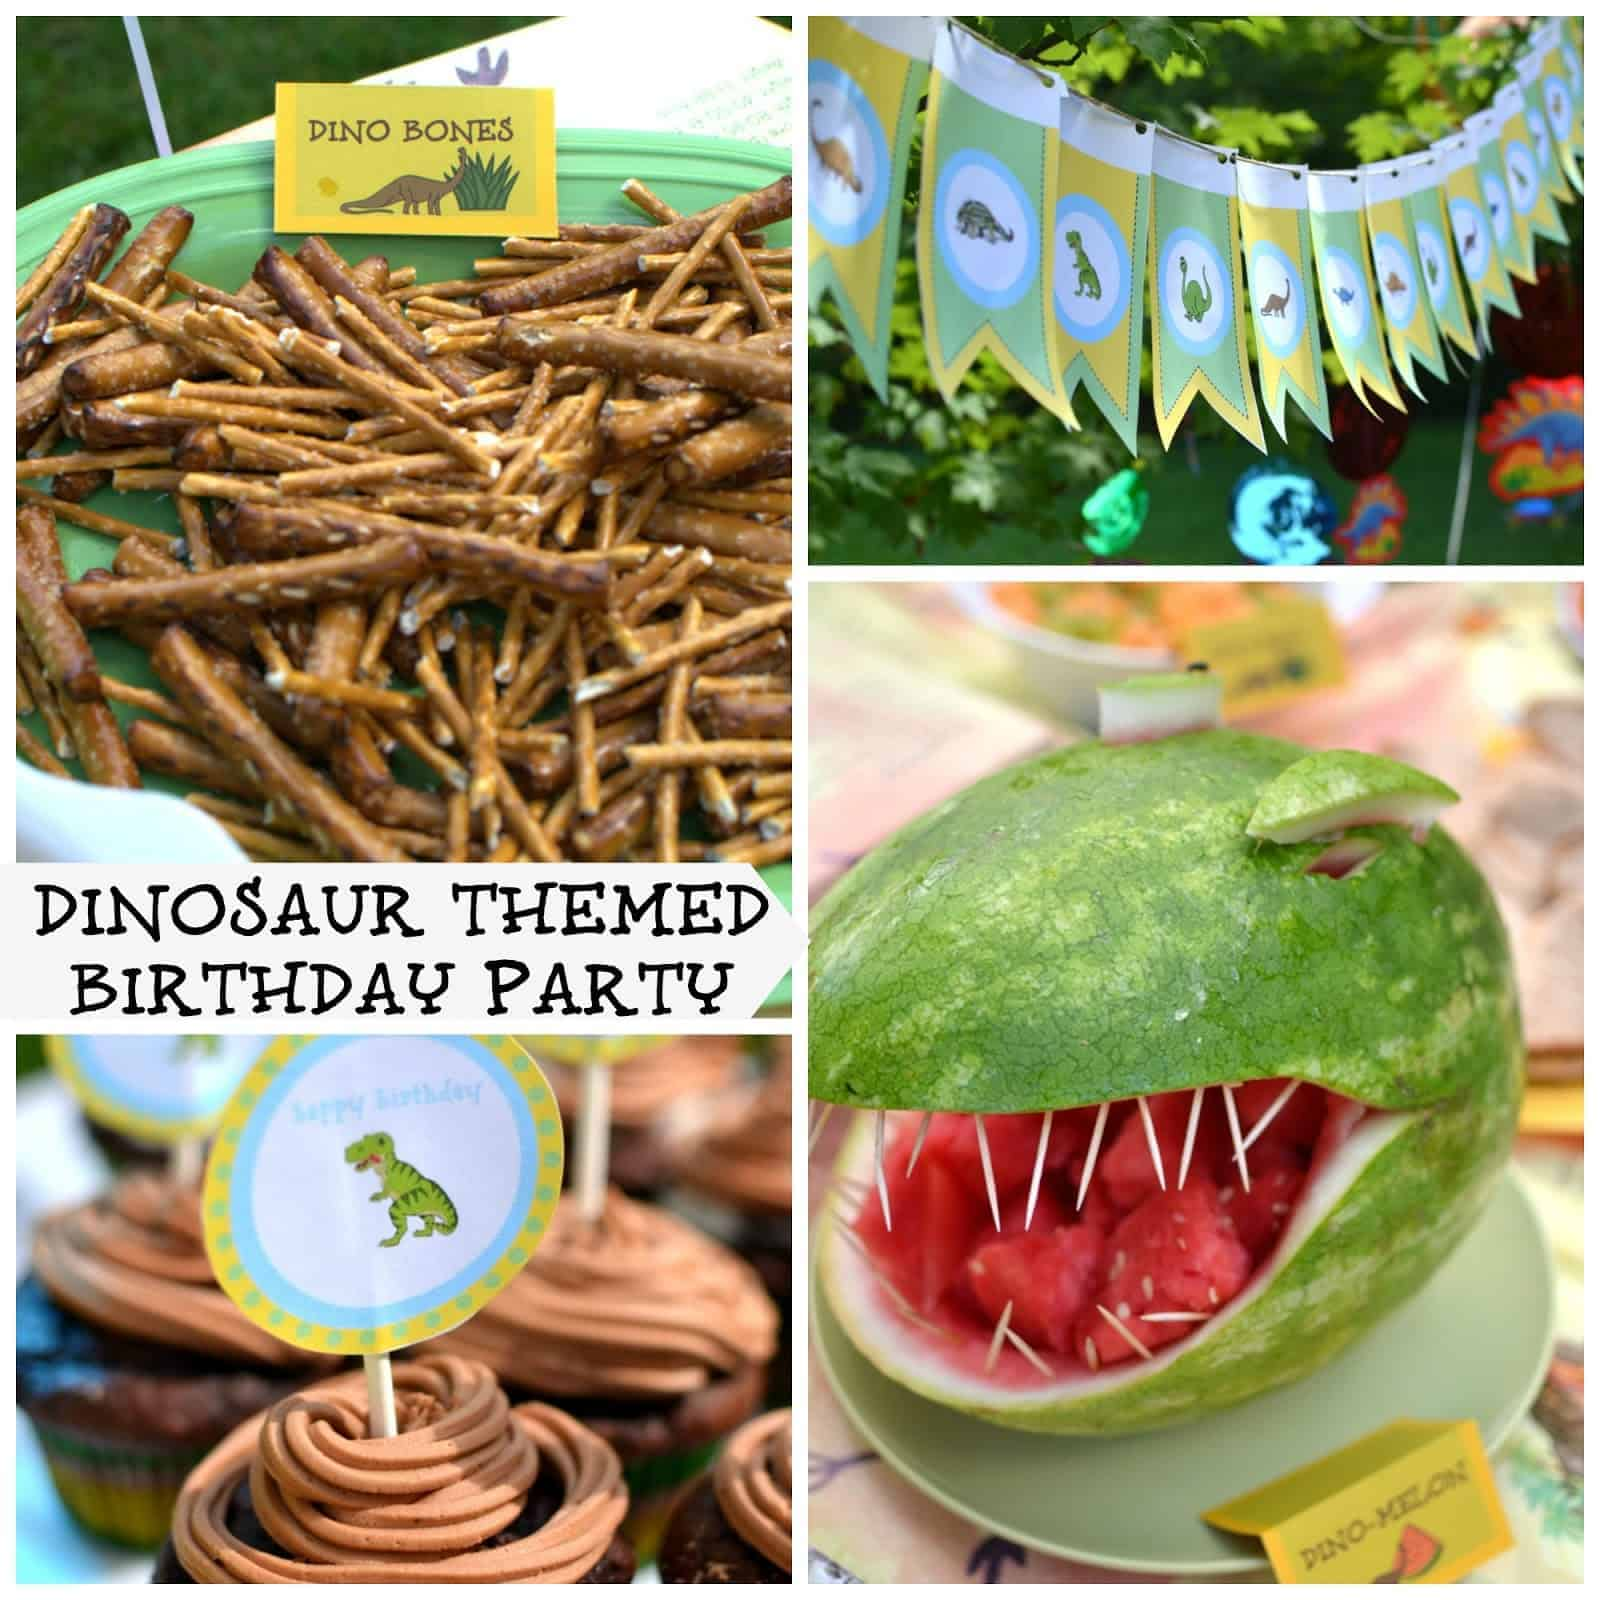 The Boys Asked Me To Throw A Dinosaur Themed Party For Them My Oldest Is Absolutely Into Dinosaurs About Year Now And